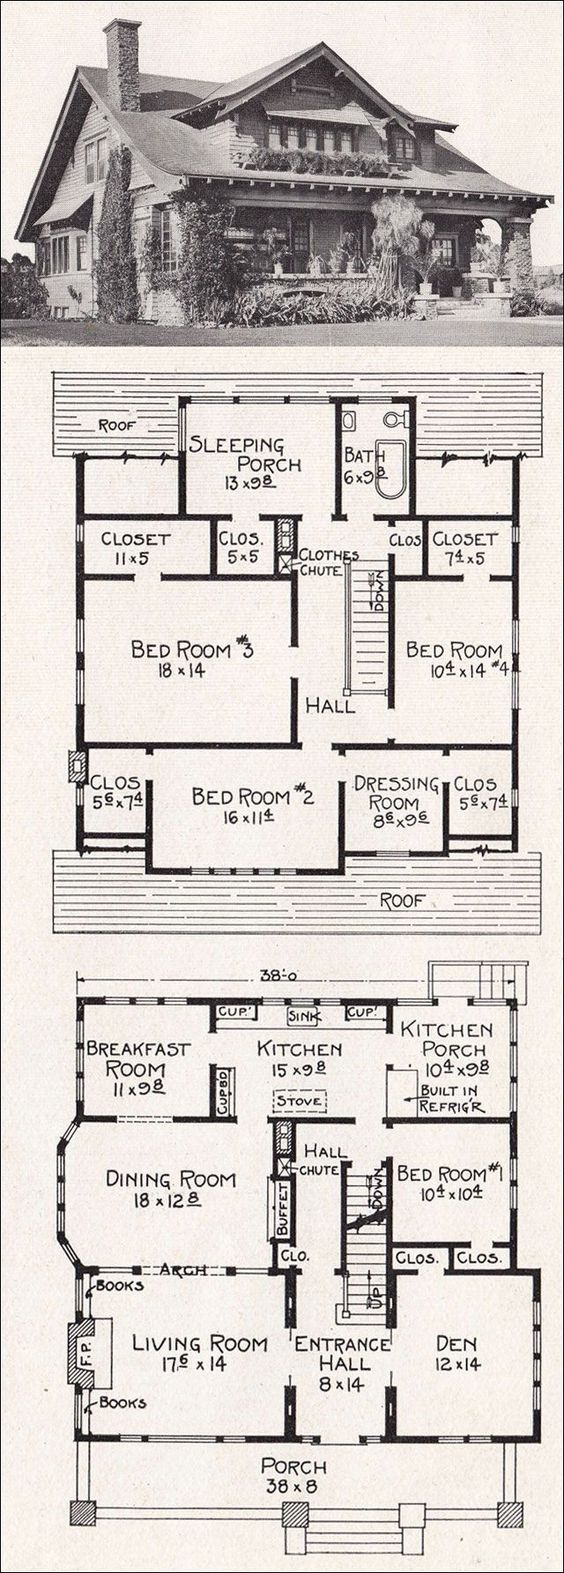 Vintage house plan that can easily be conformed to our modern day    Vintage house plan that can easily be conformed to our modern day life style  I